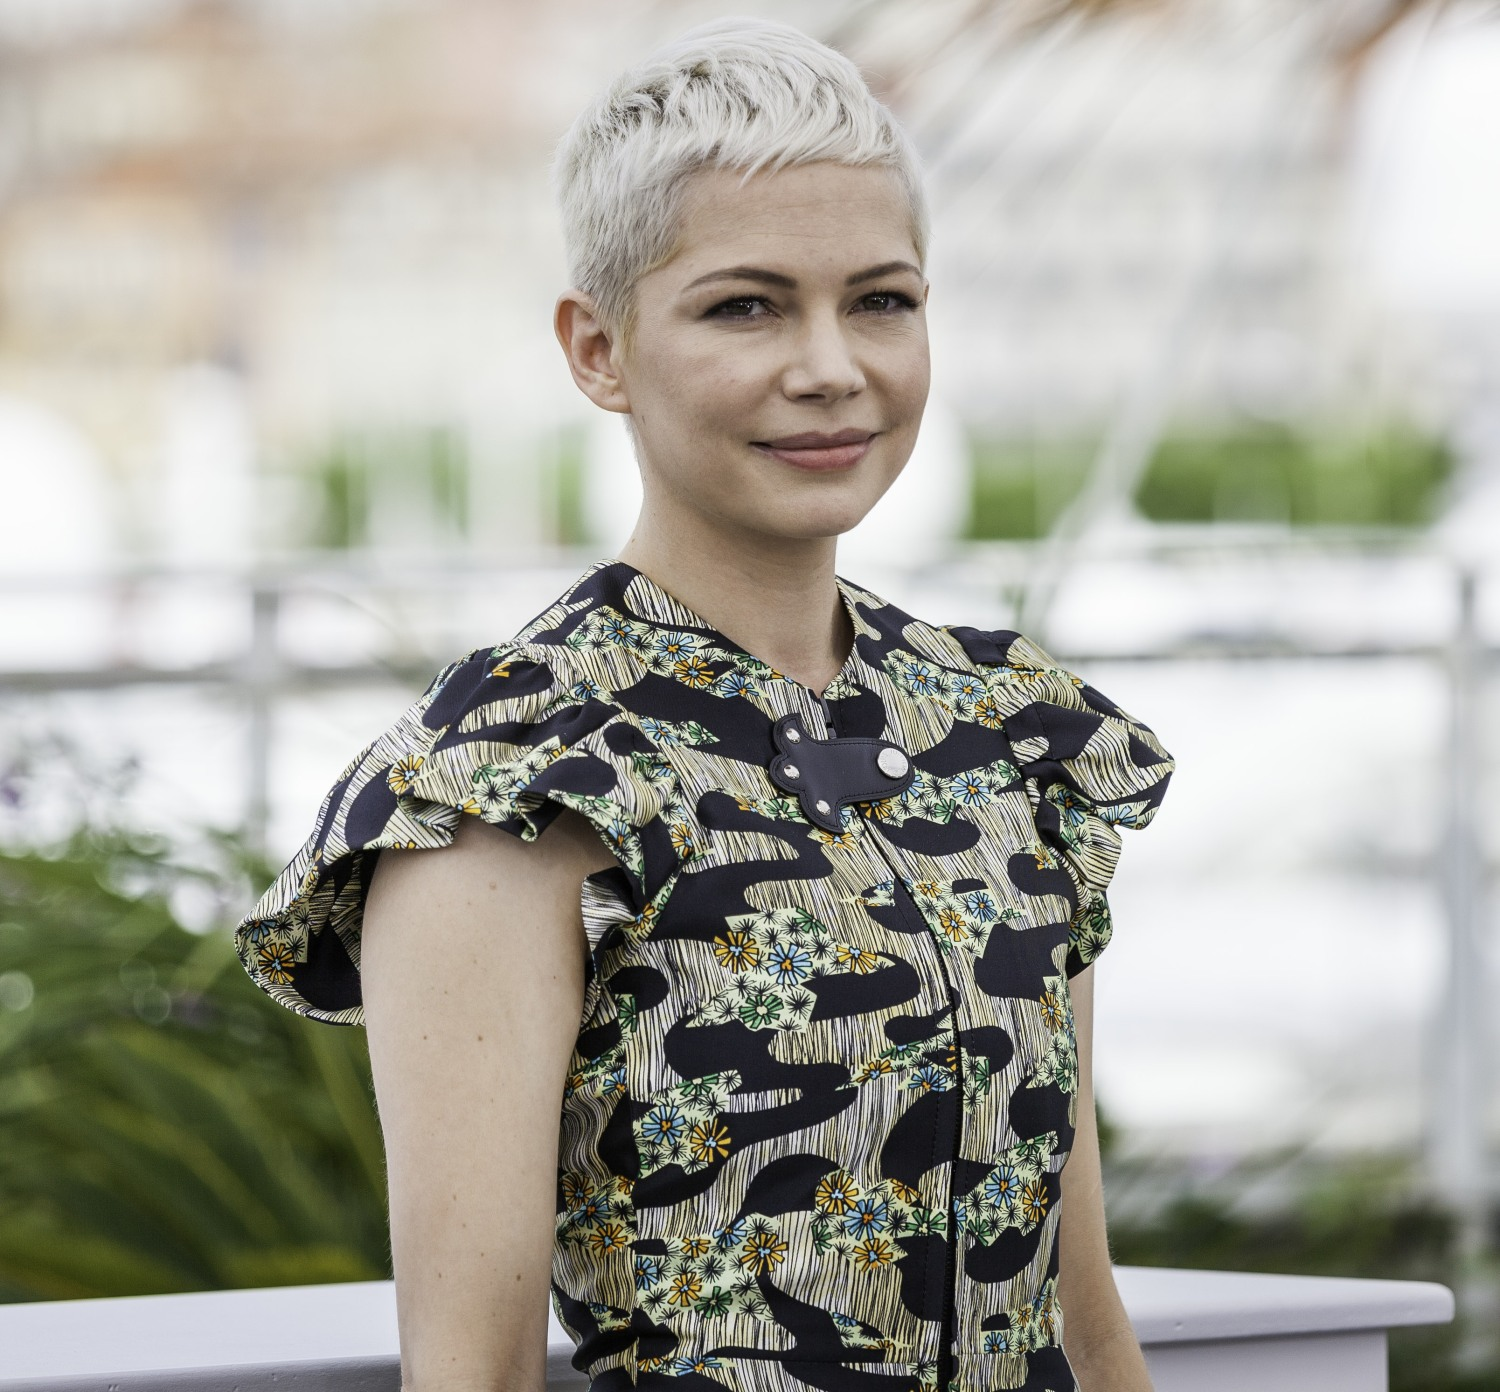 70th annual Cannes Film Festival - 'Wonderstruck' - Photocall